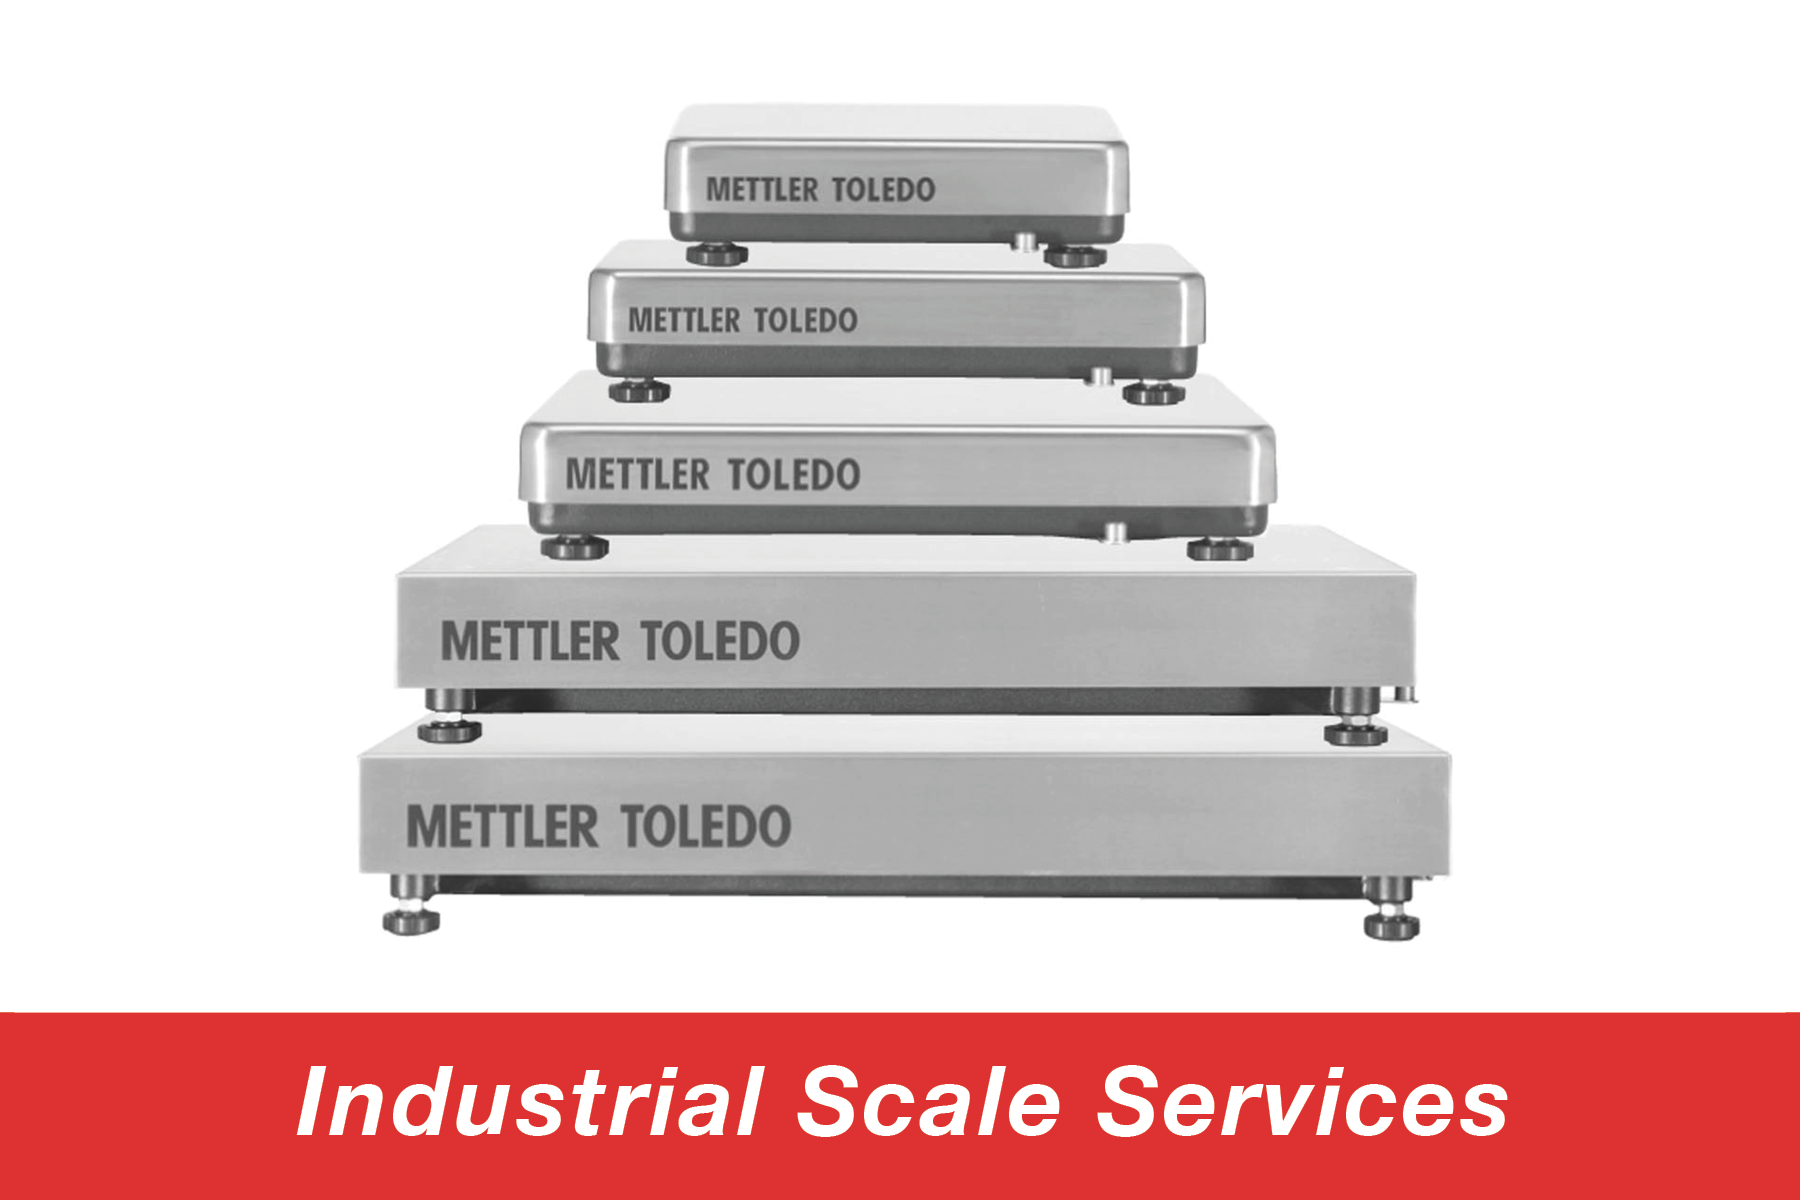 Industrial Scale Services - Updated